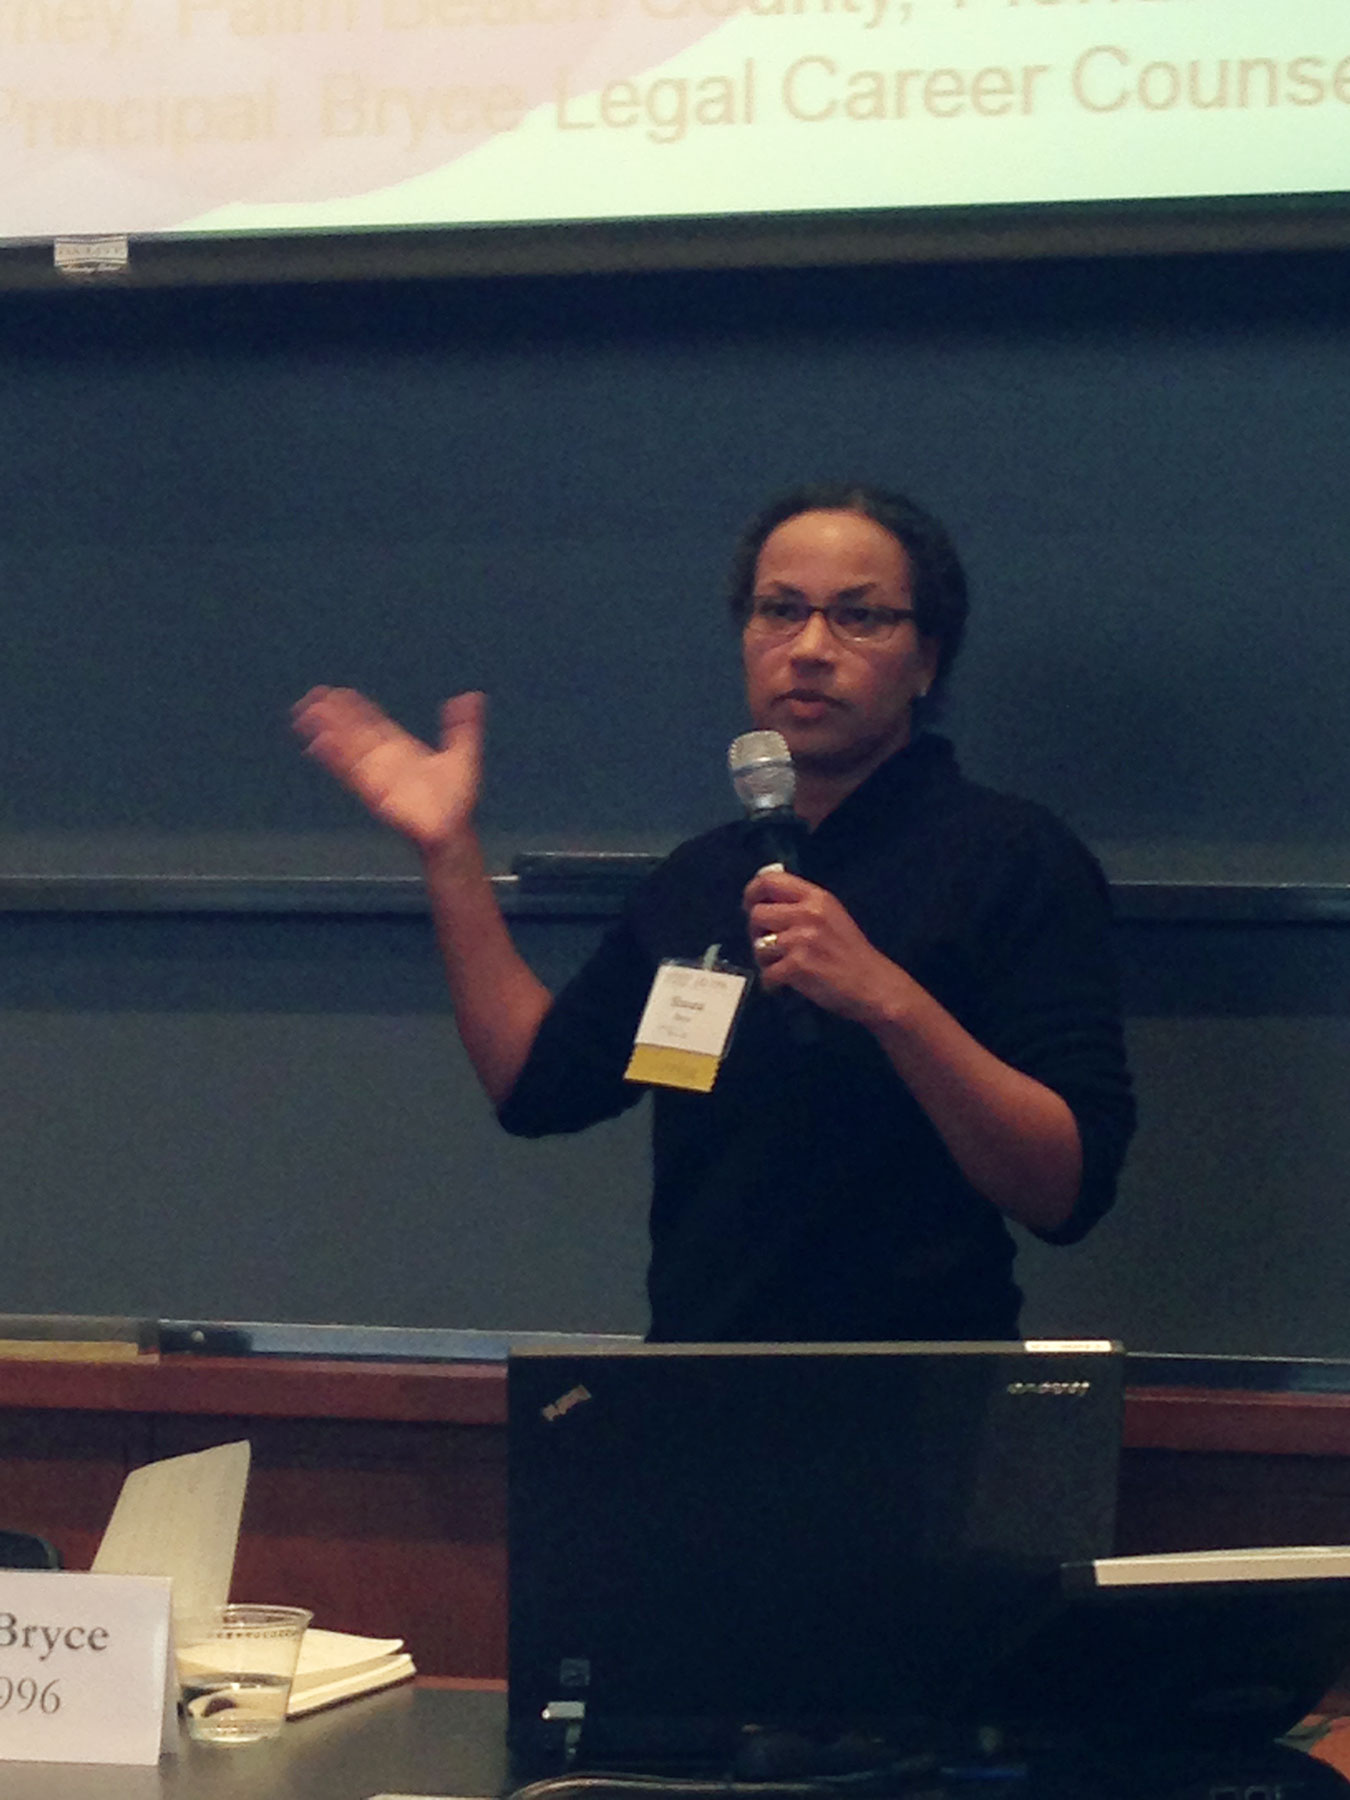 Shauna C. Bryce at speaking about career re-evalutaion and mid-career pivots at a Harvard Law School alumni event.